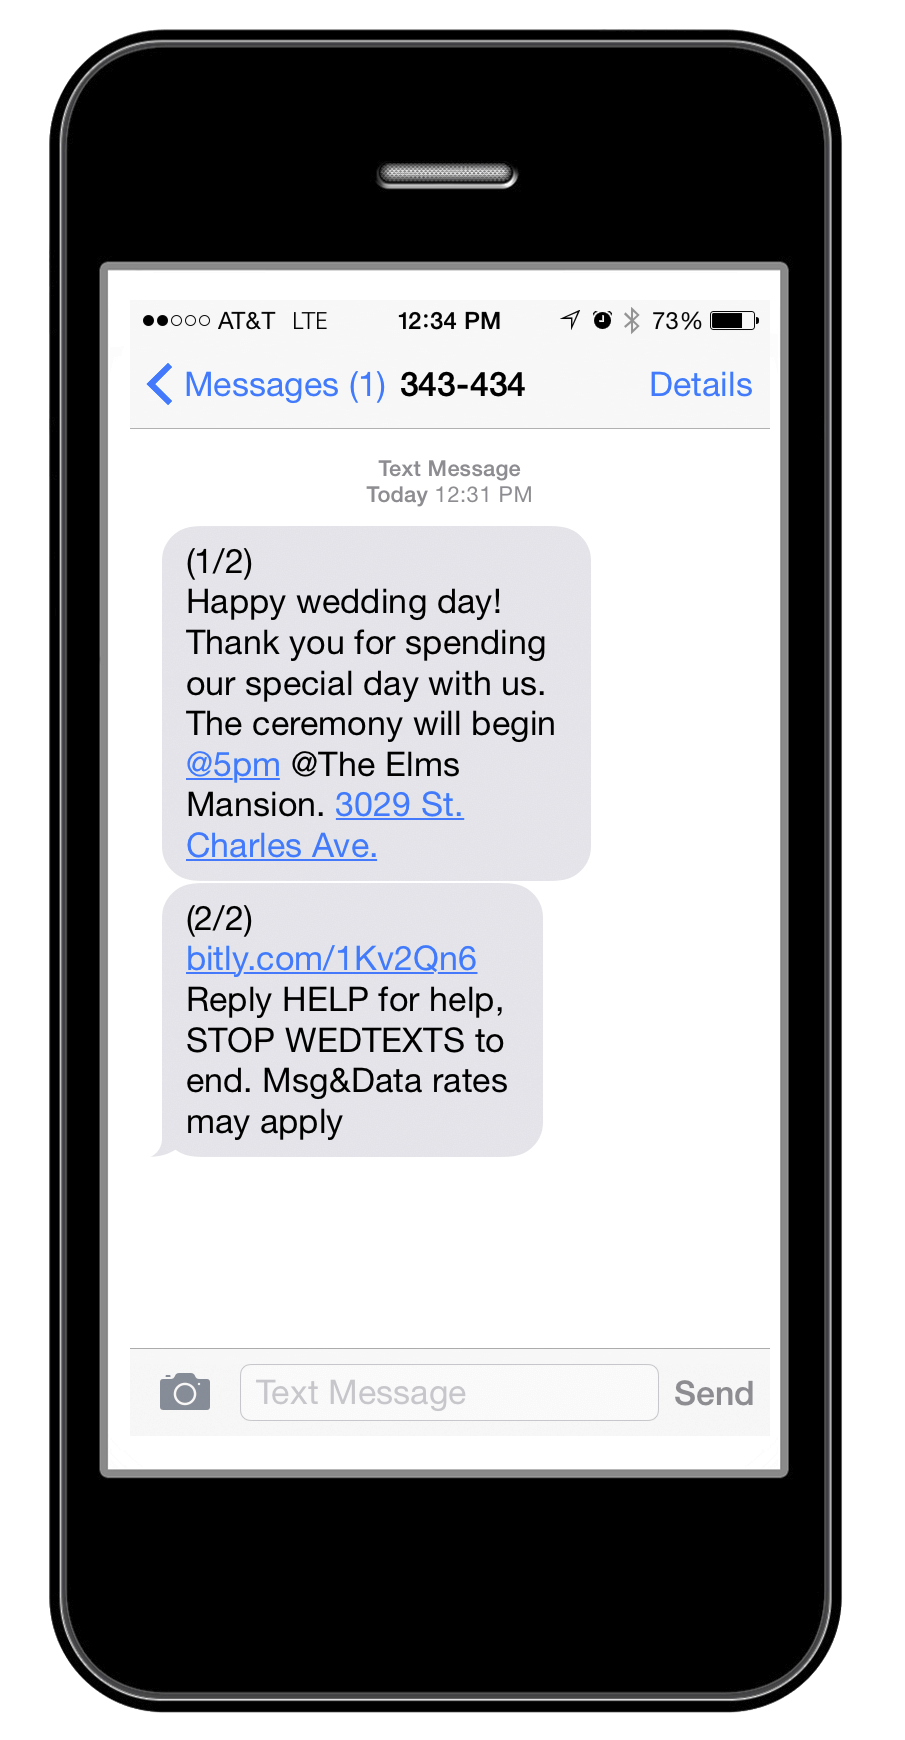 wedtexts - reducing wedding planning stress